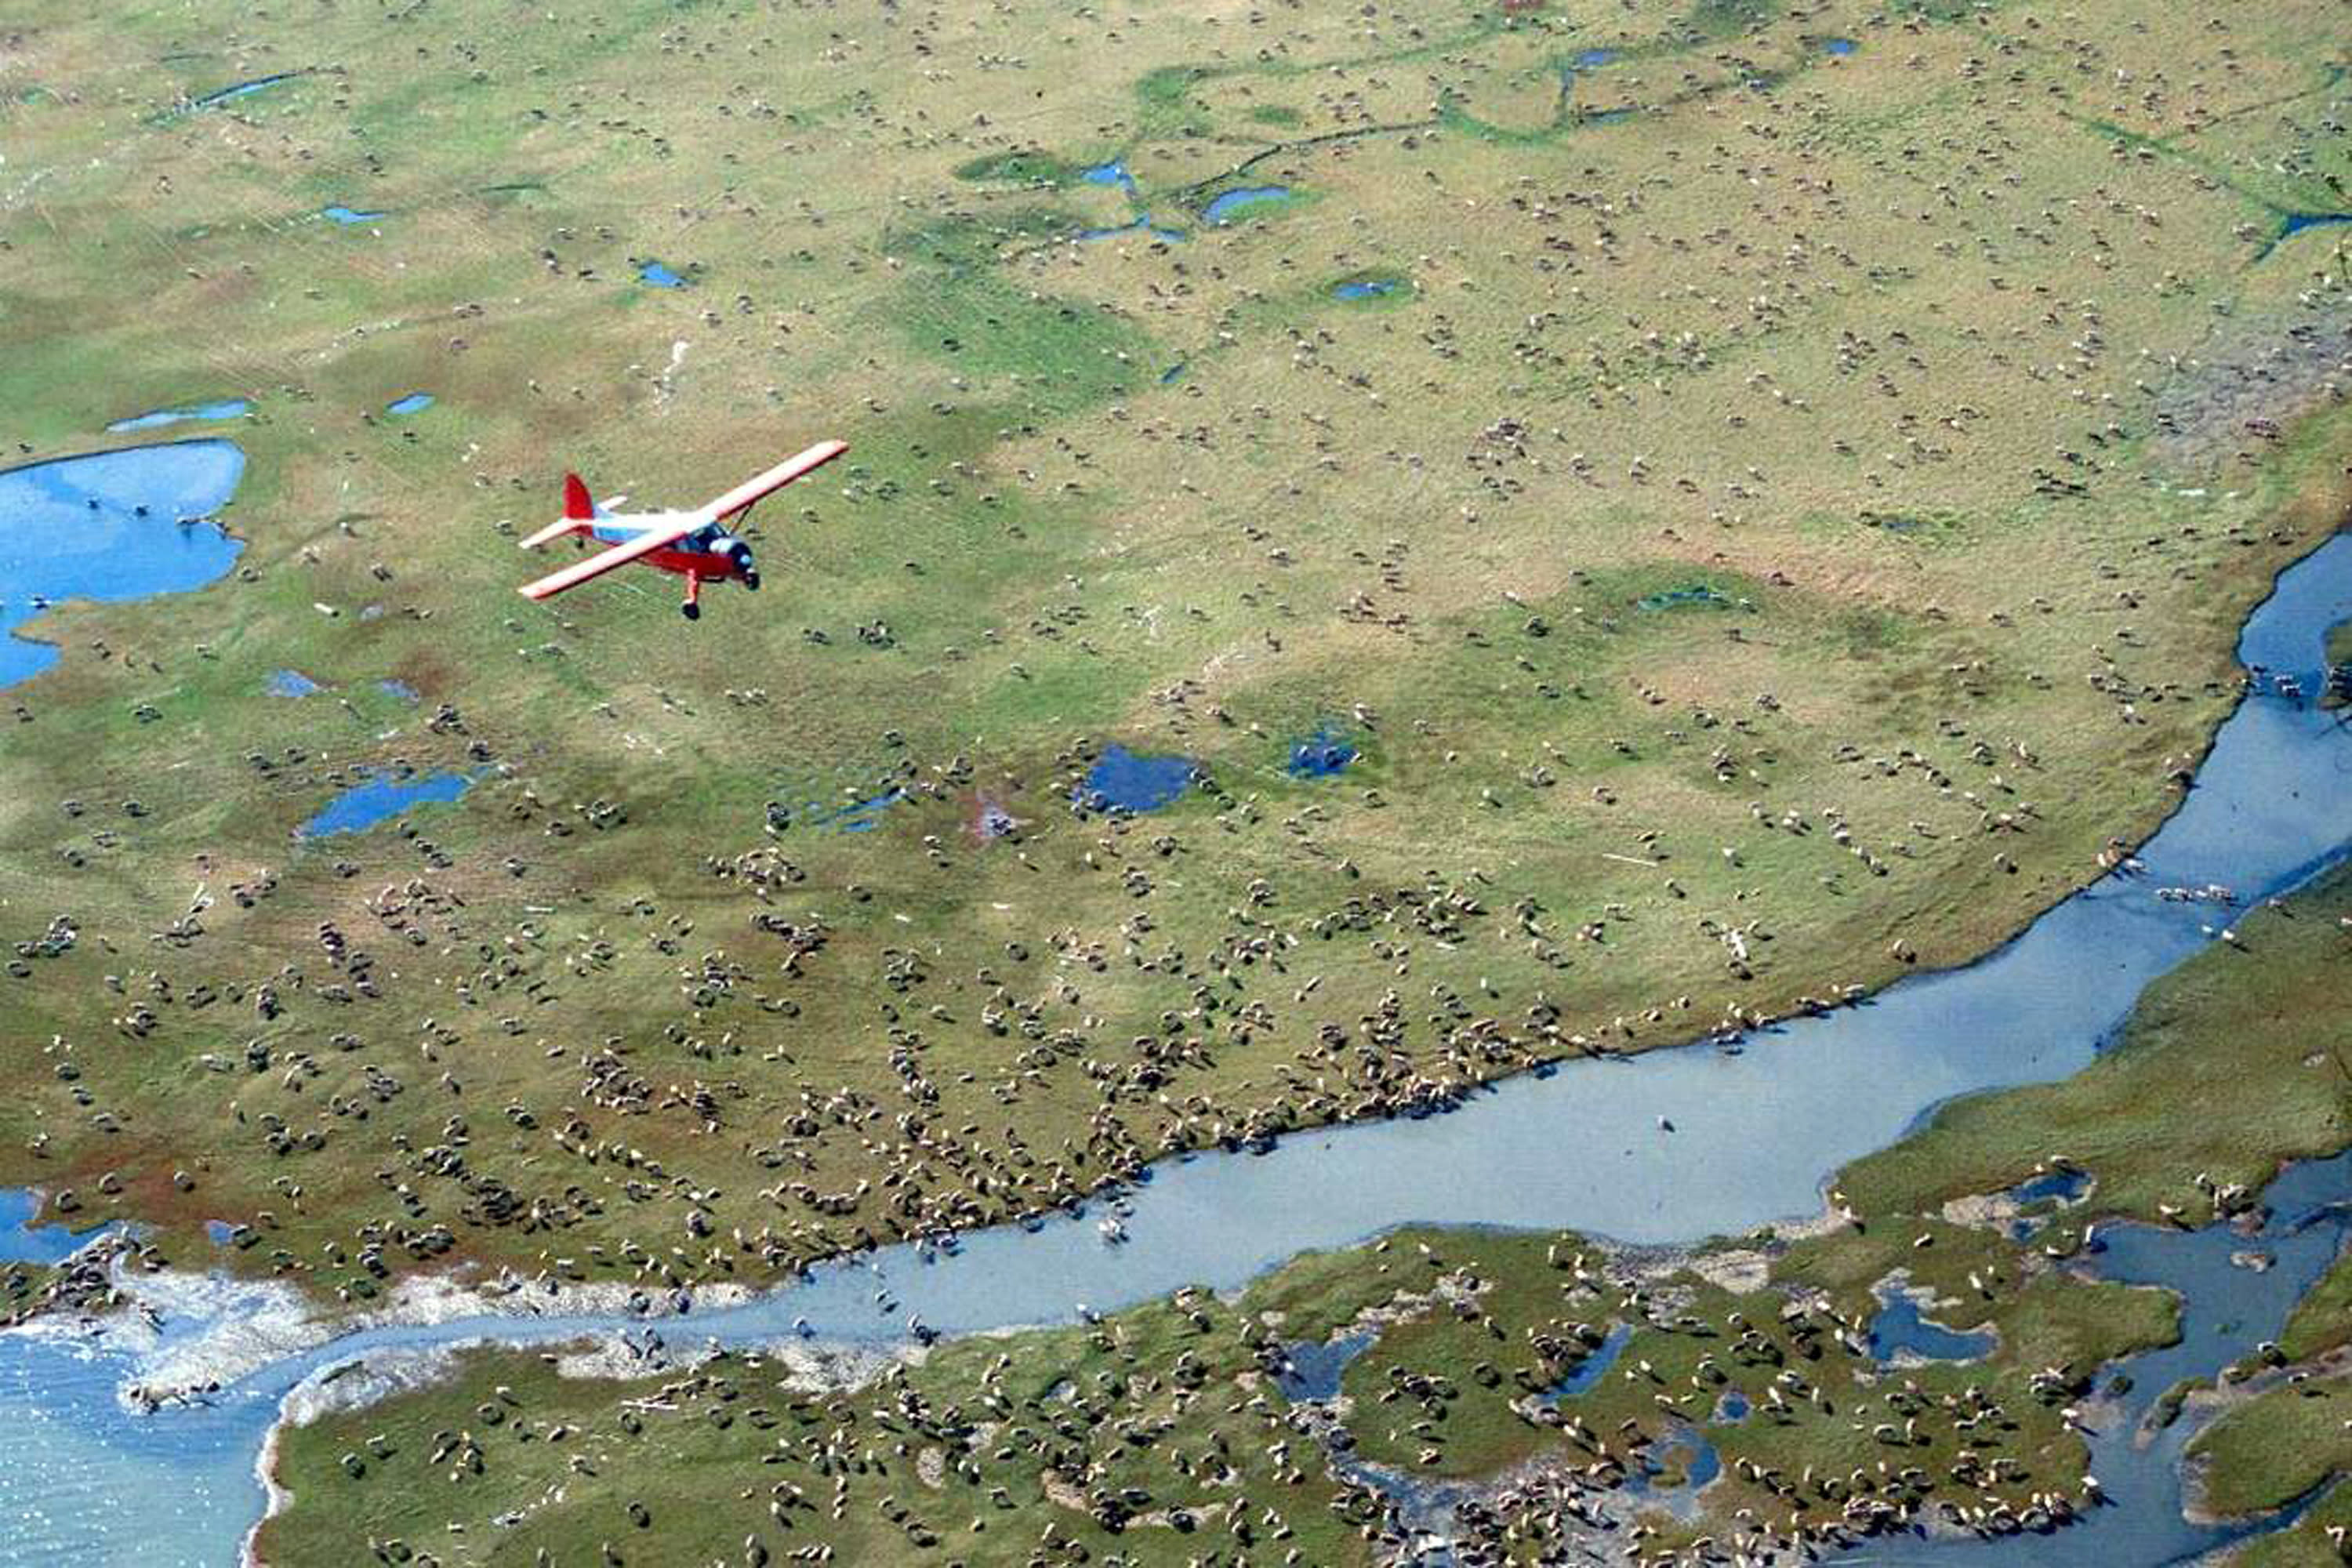 FILE - In this undated file photo provided by the U.S. Fish and Wildlife Service, an airplane flies over caribou from the Porcupine Caribou Herd on the coastal plain of the Arctic National Wildlife Refuge in northeast Alaska. Environmental groups wasted no time challenging the Trump administration's attempt to open part of an Alaska refuge where polar bears and caribou roam free to oil and gas drilling. (U.S. Fish and Wildlife Service via AP, File)